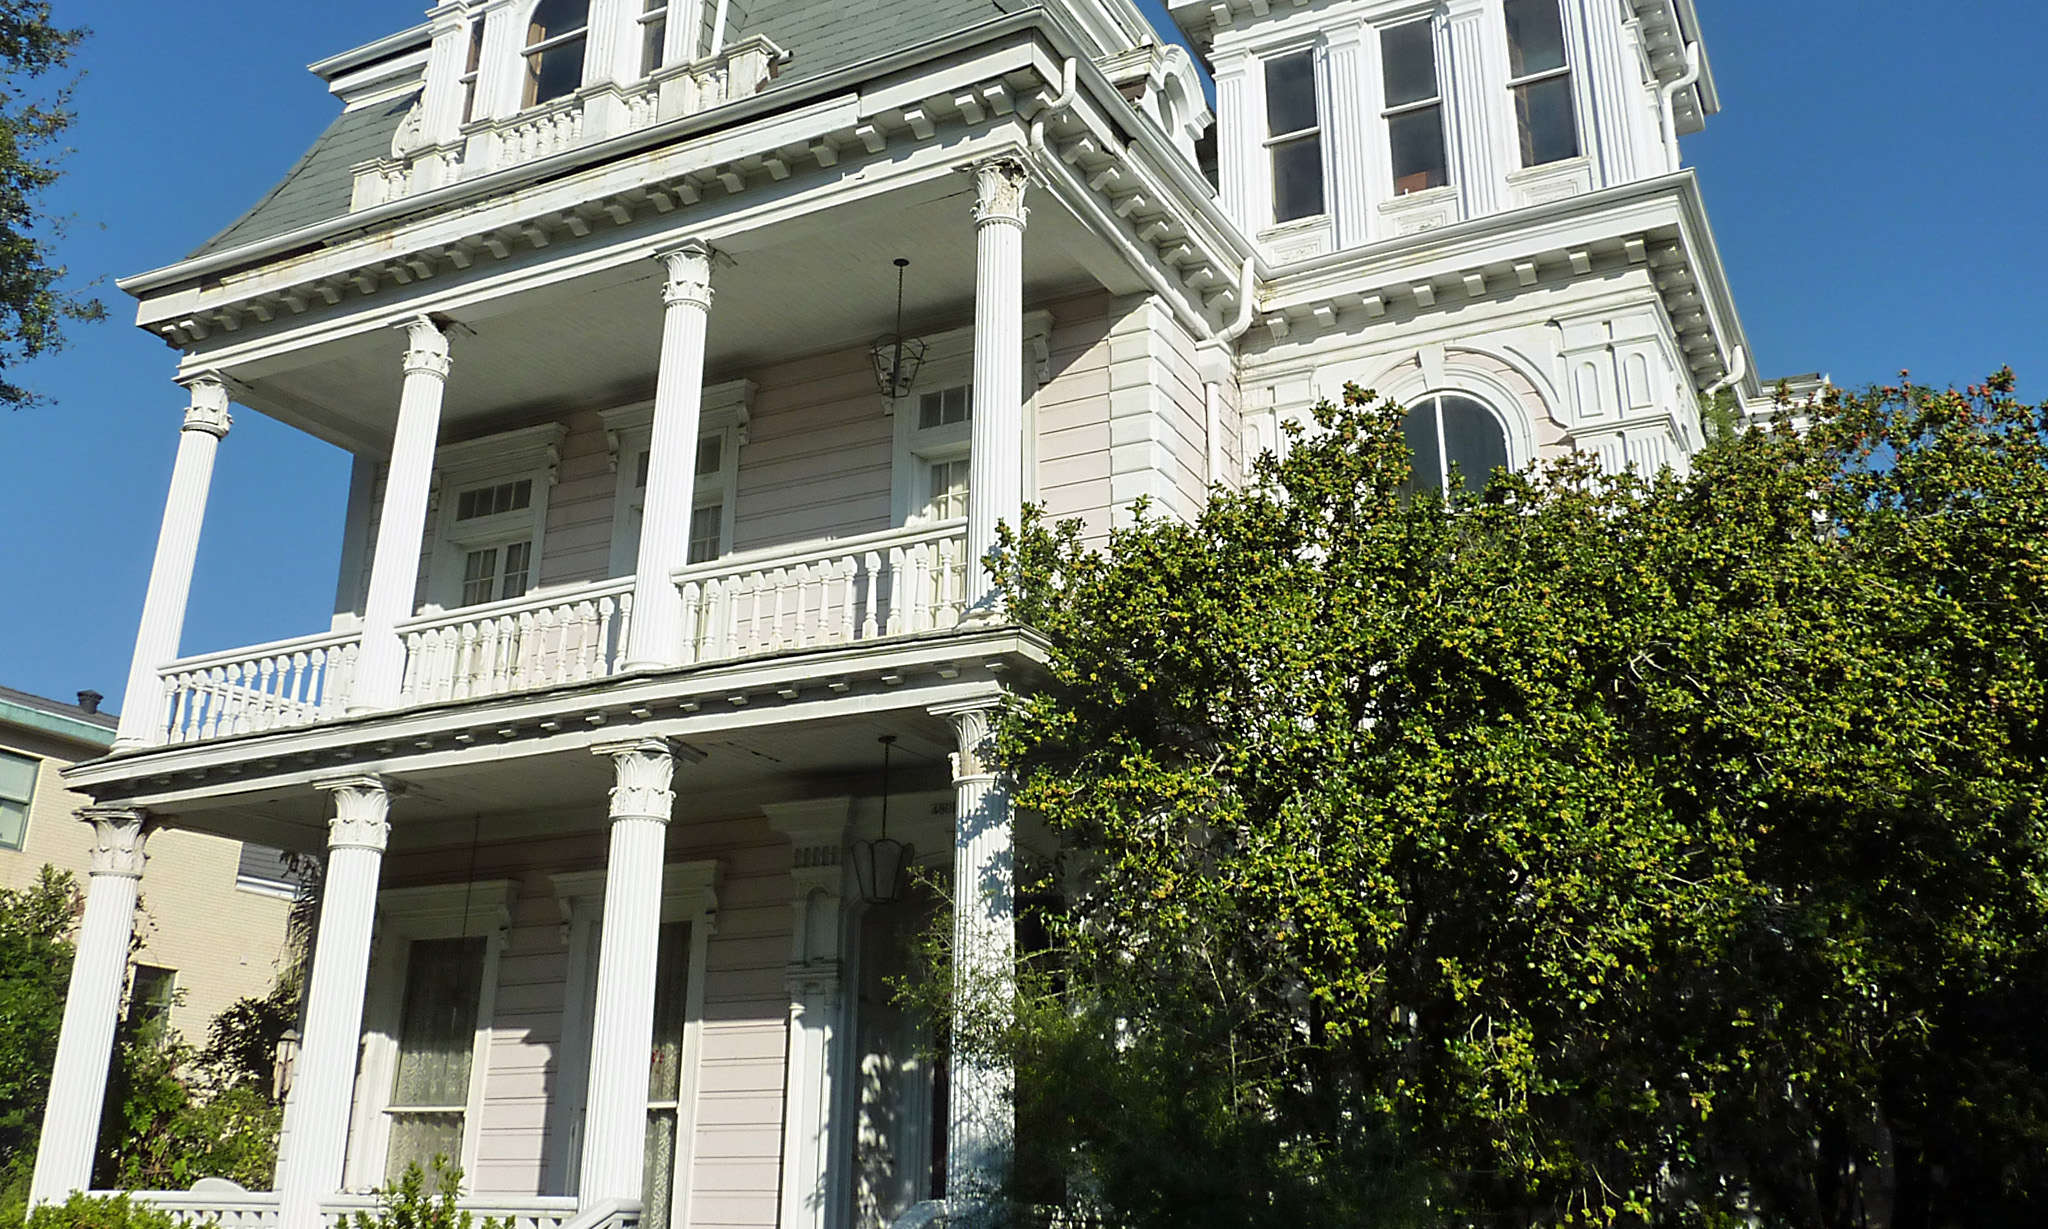 Architecture tours in the Garden District